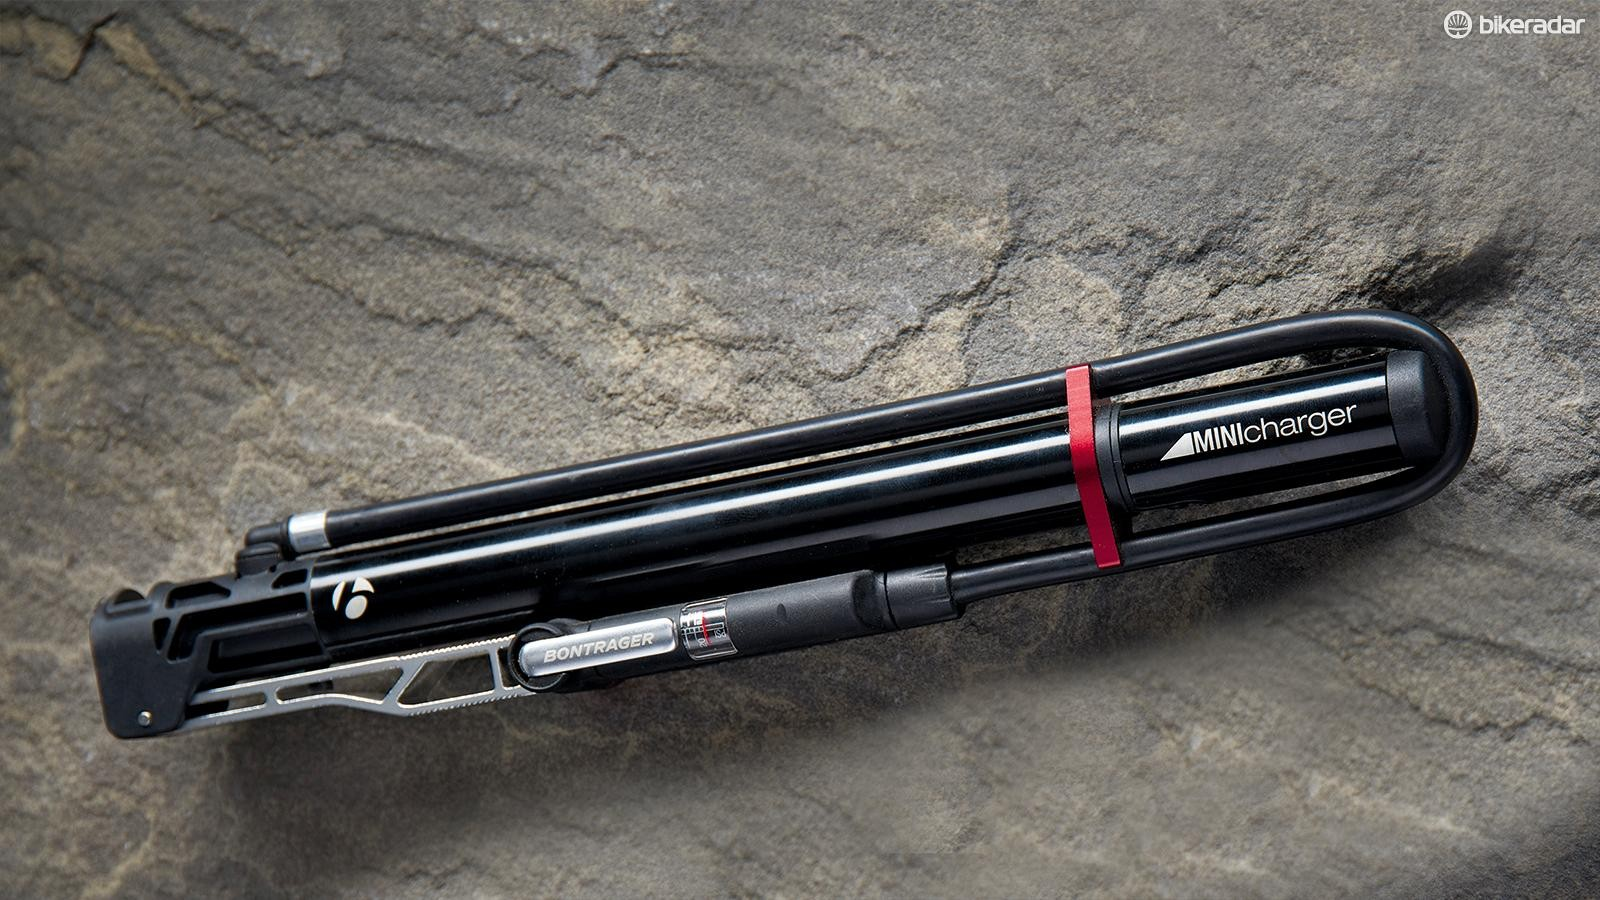 It might not look the sleekest, but Bontrager's Mini Charger seems built to last